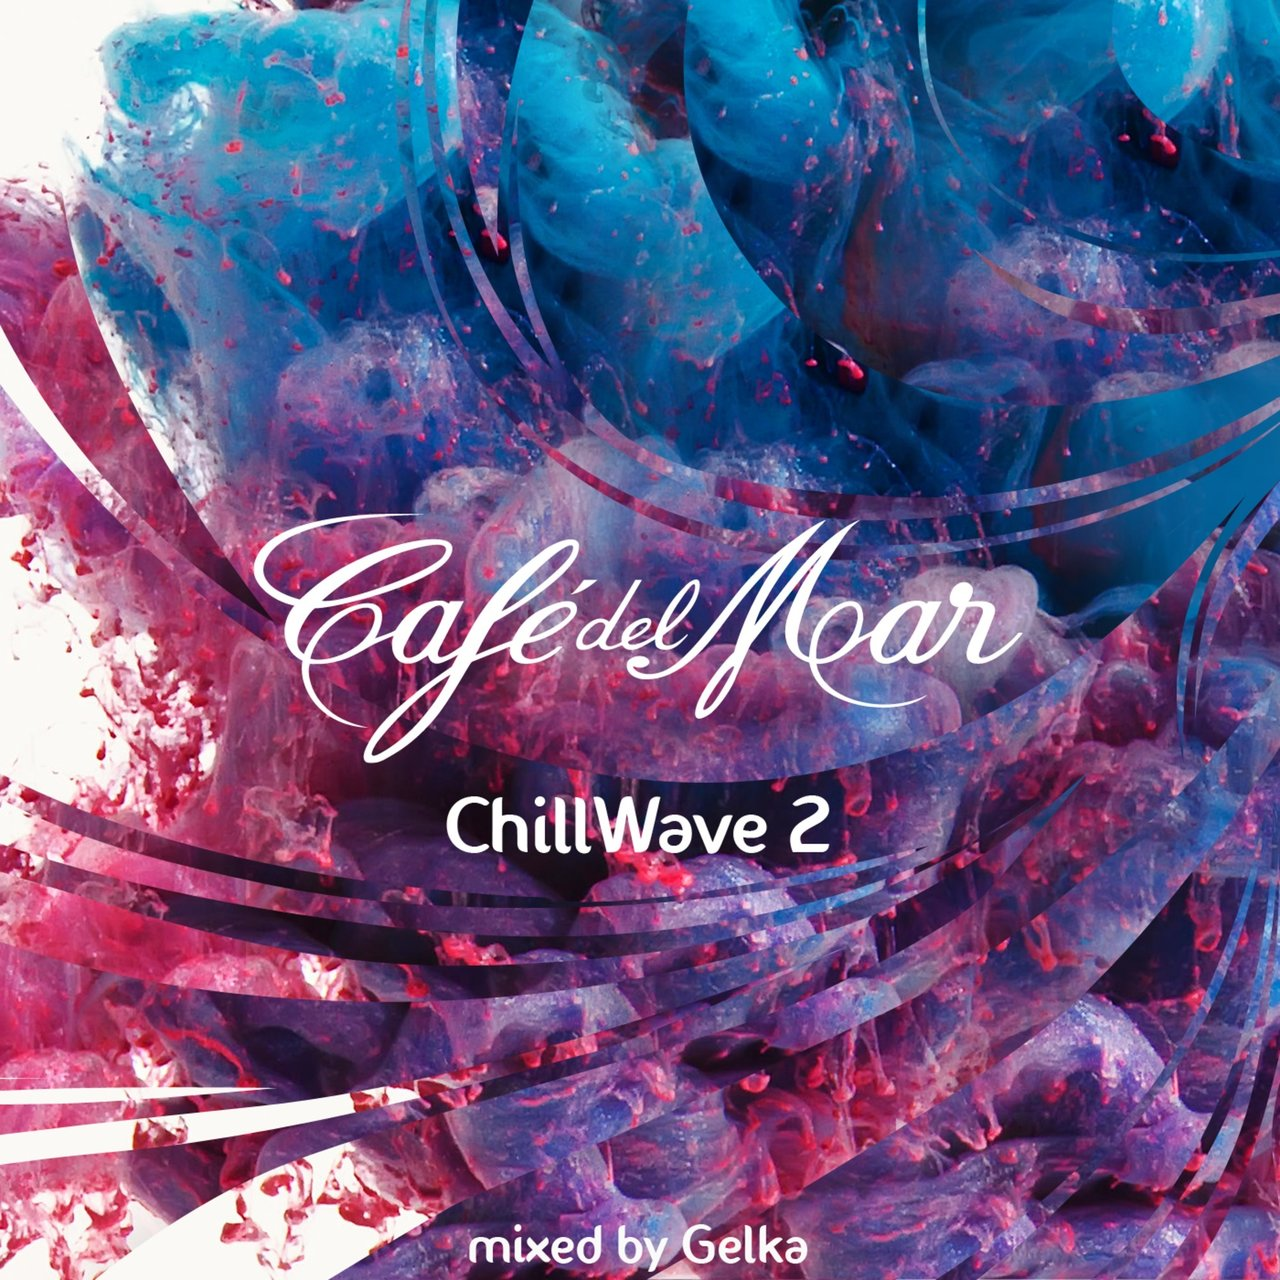 Café del Mar ChillWave 2